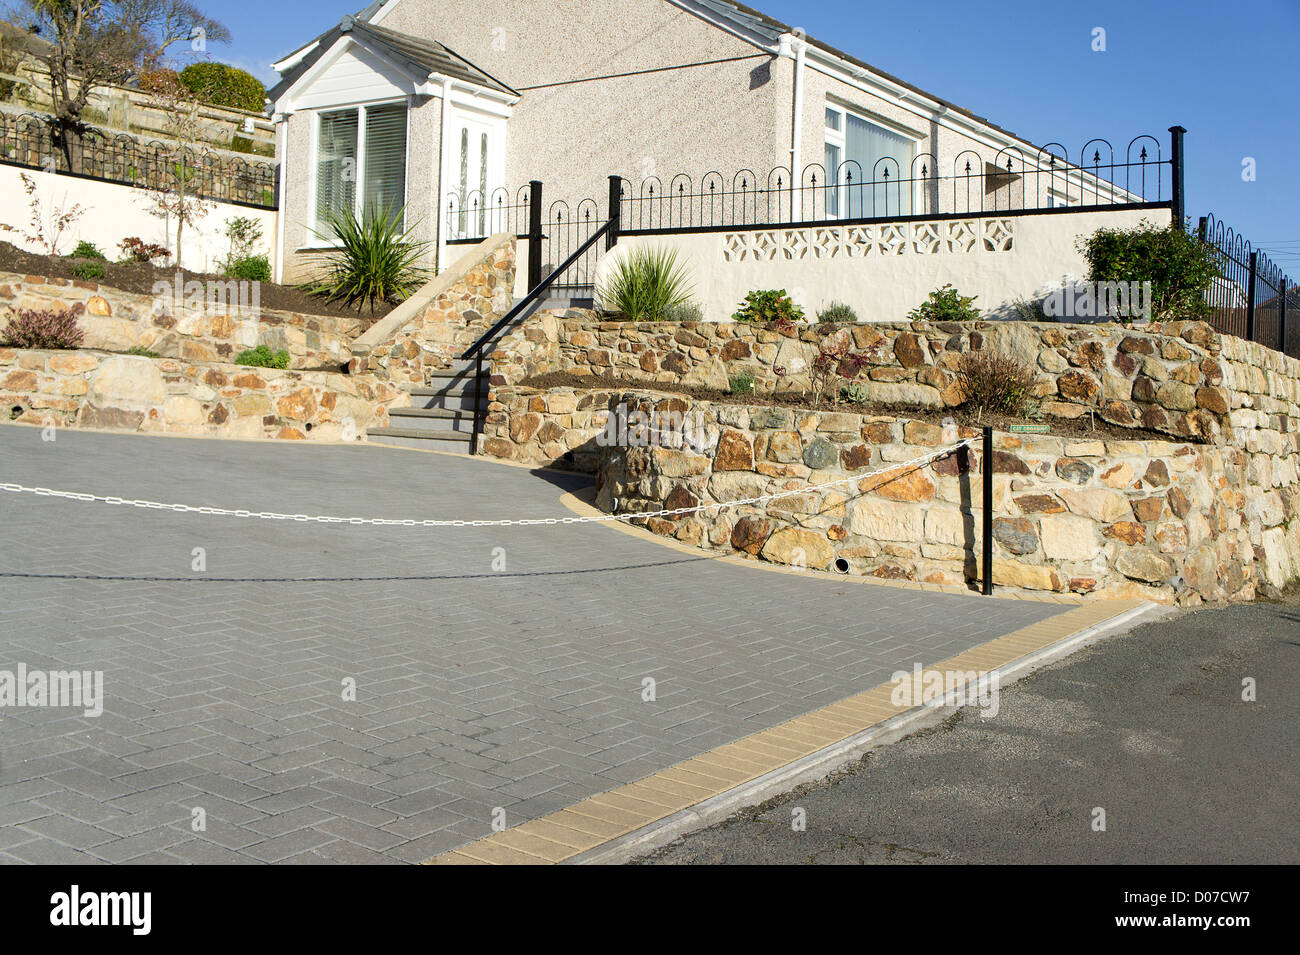 a driveway with block paving - Stock Image